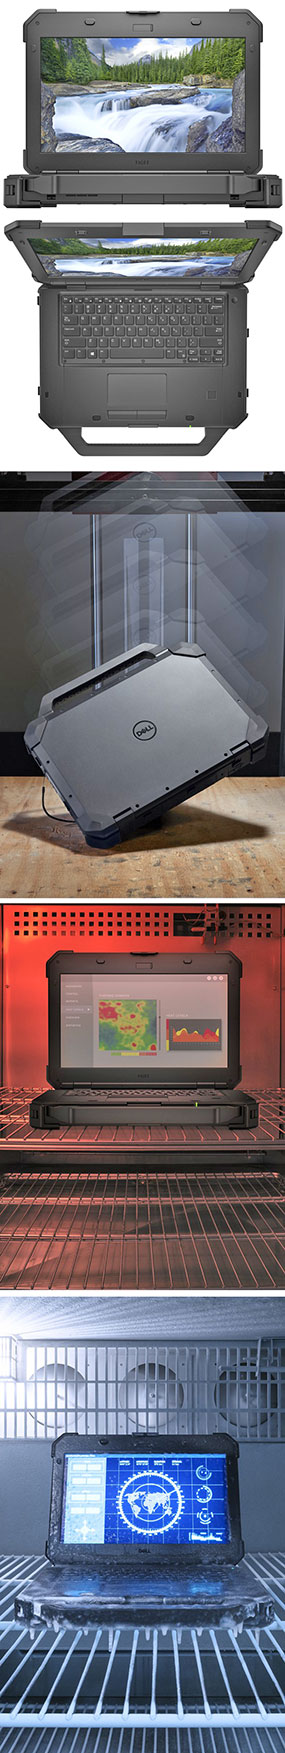 Rugged PC Review com - Rugged Notebooks: Dell Latitude 7424 Rugged